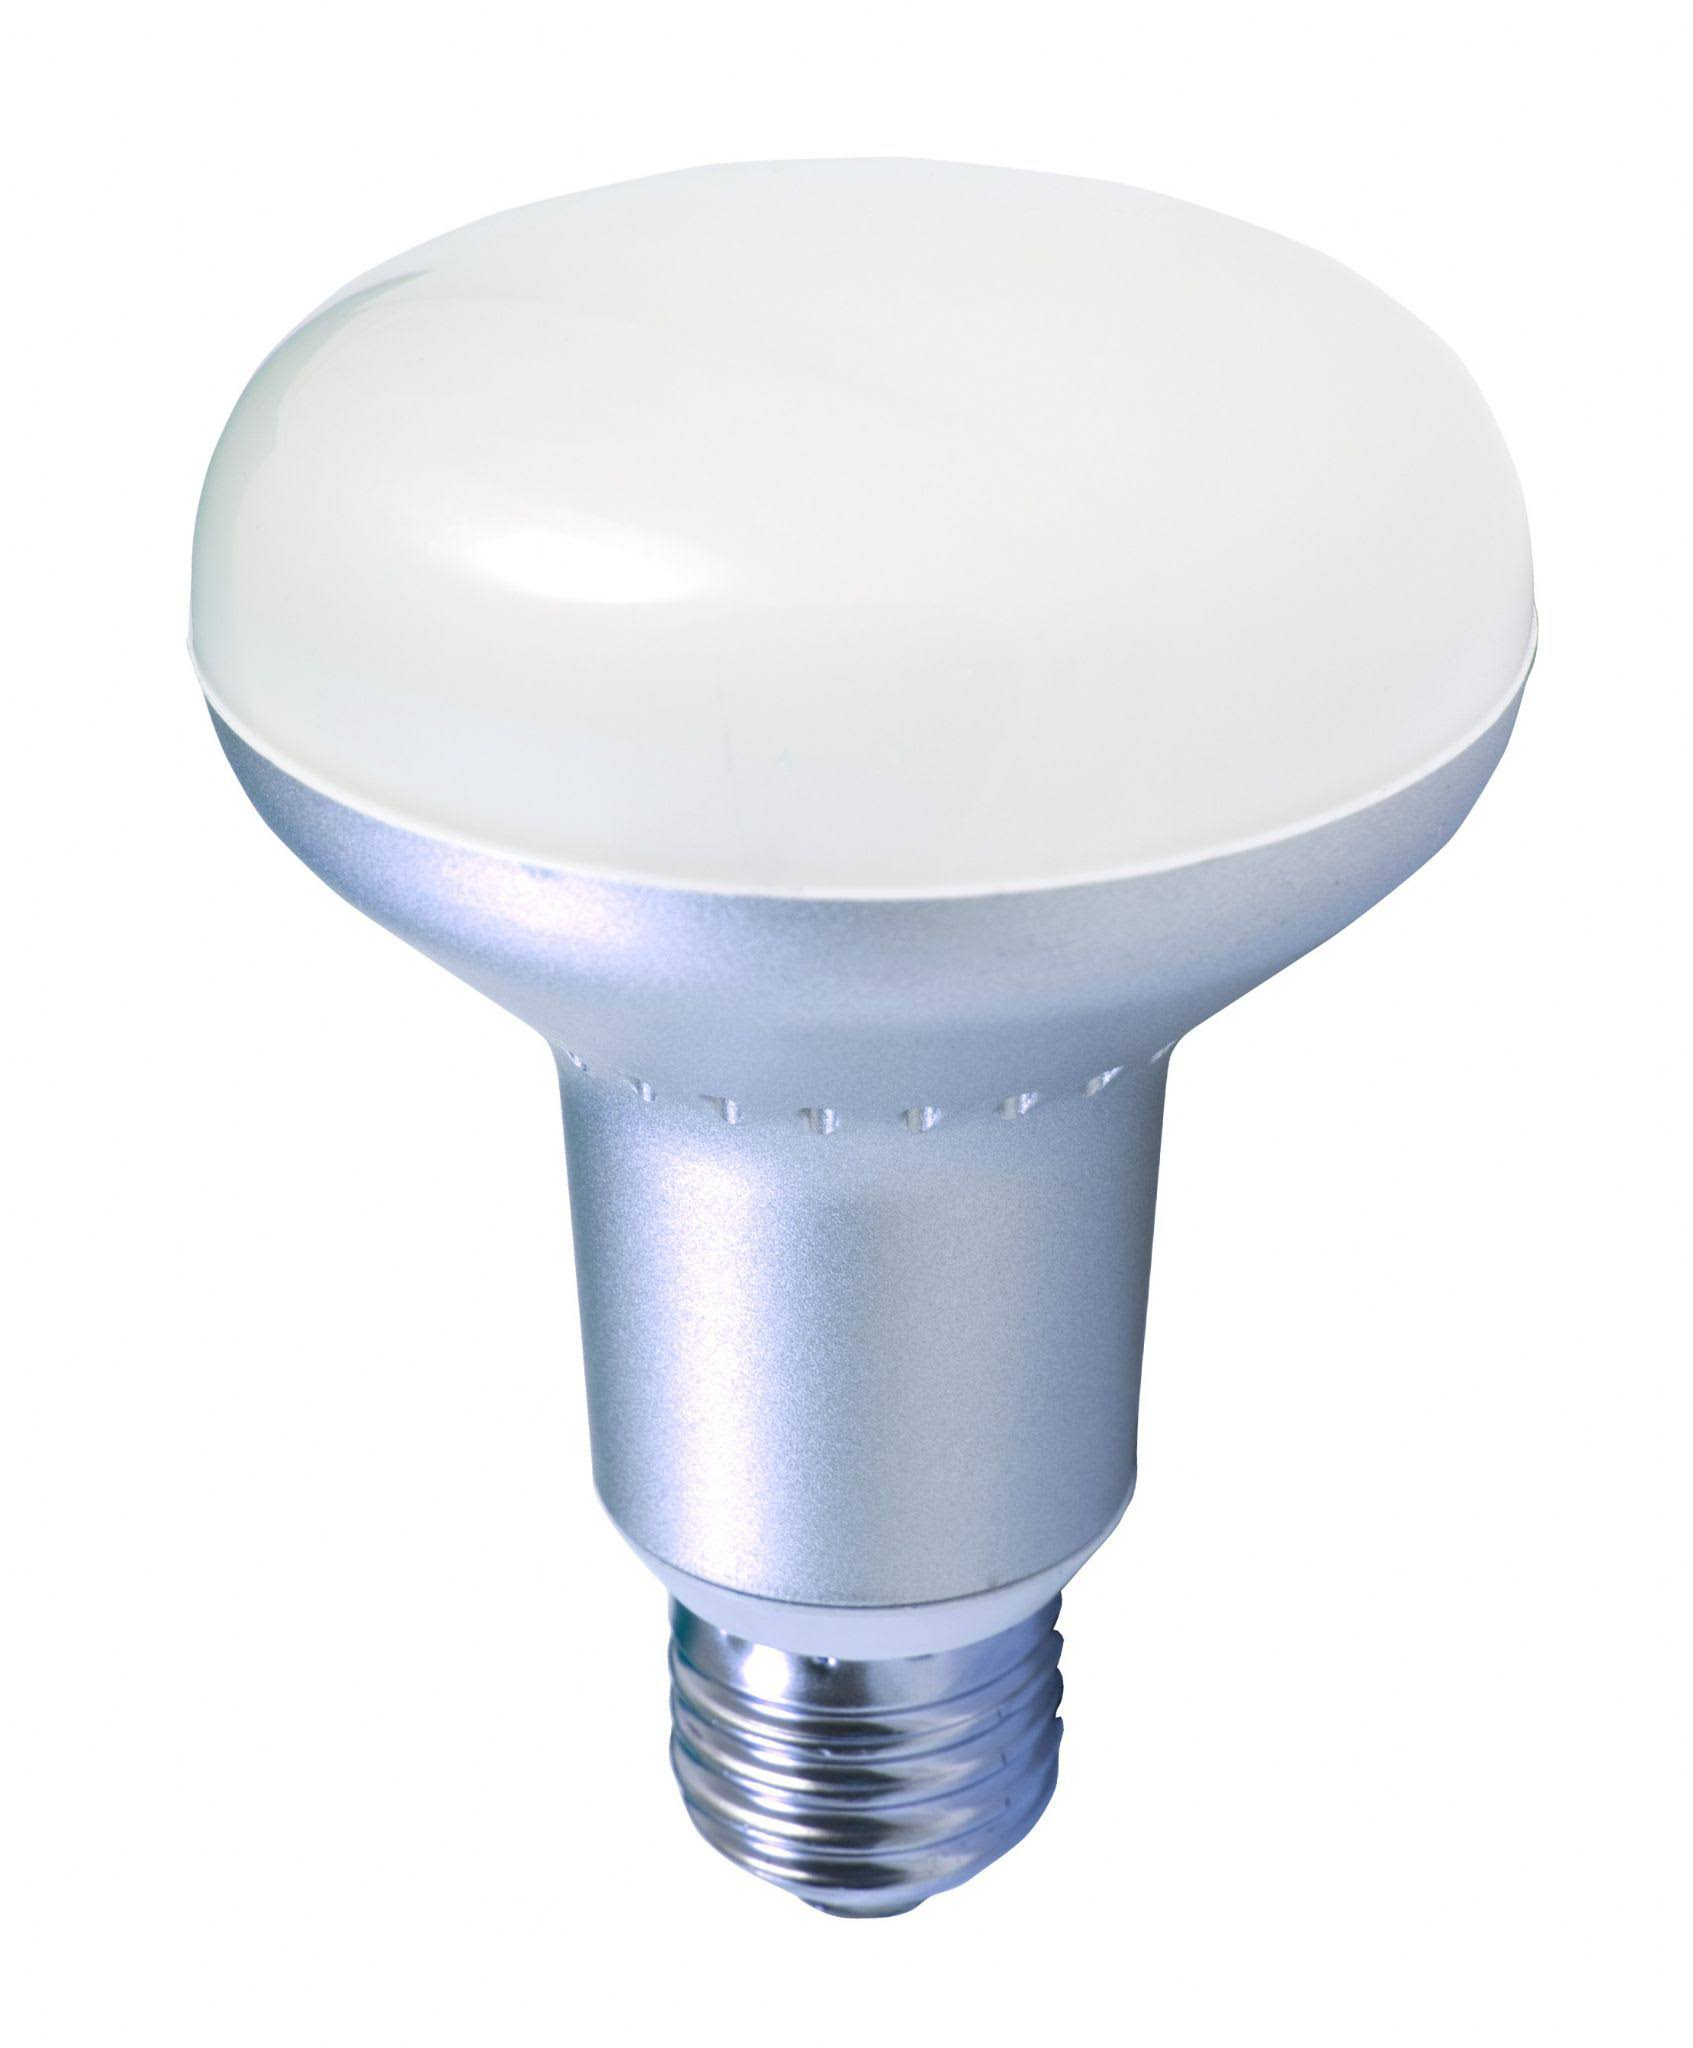 Bell 05682 R80 ES Warm White Non-Dimmable LED Spotlight - 12w